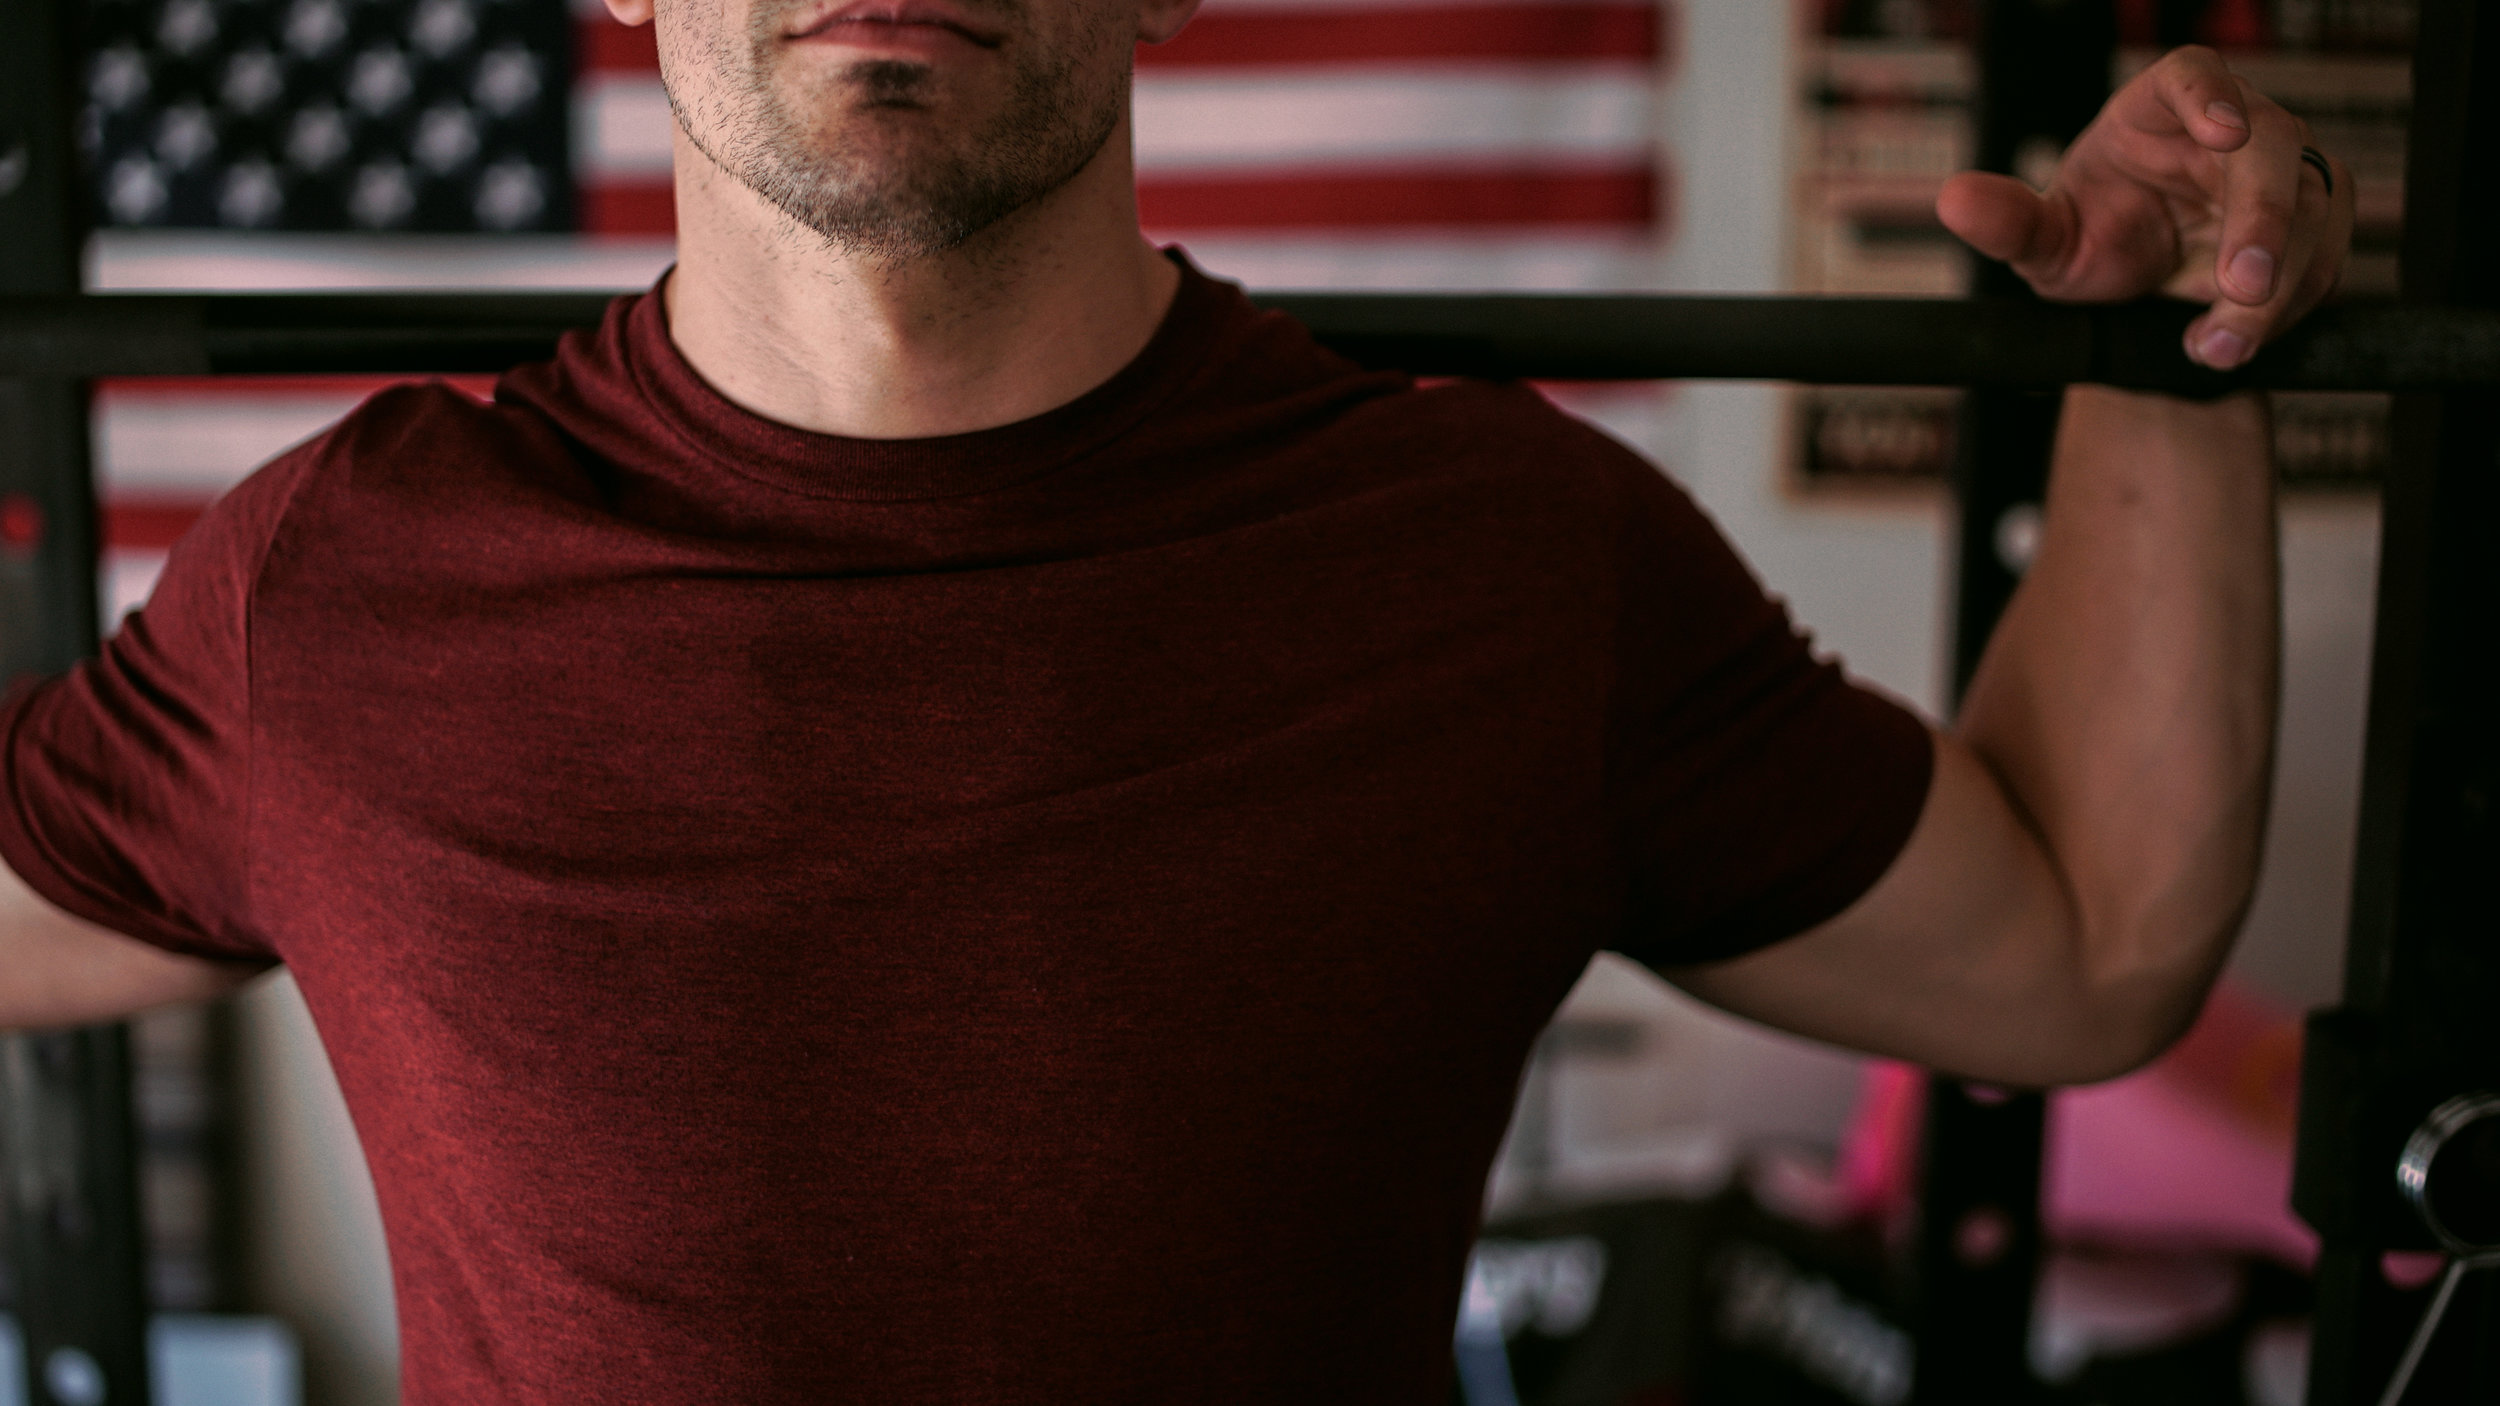 How to Gain Access to WarriorFit